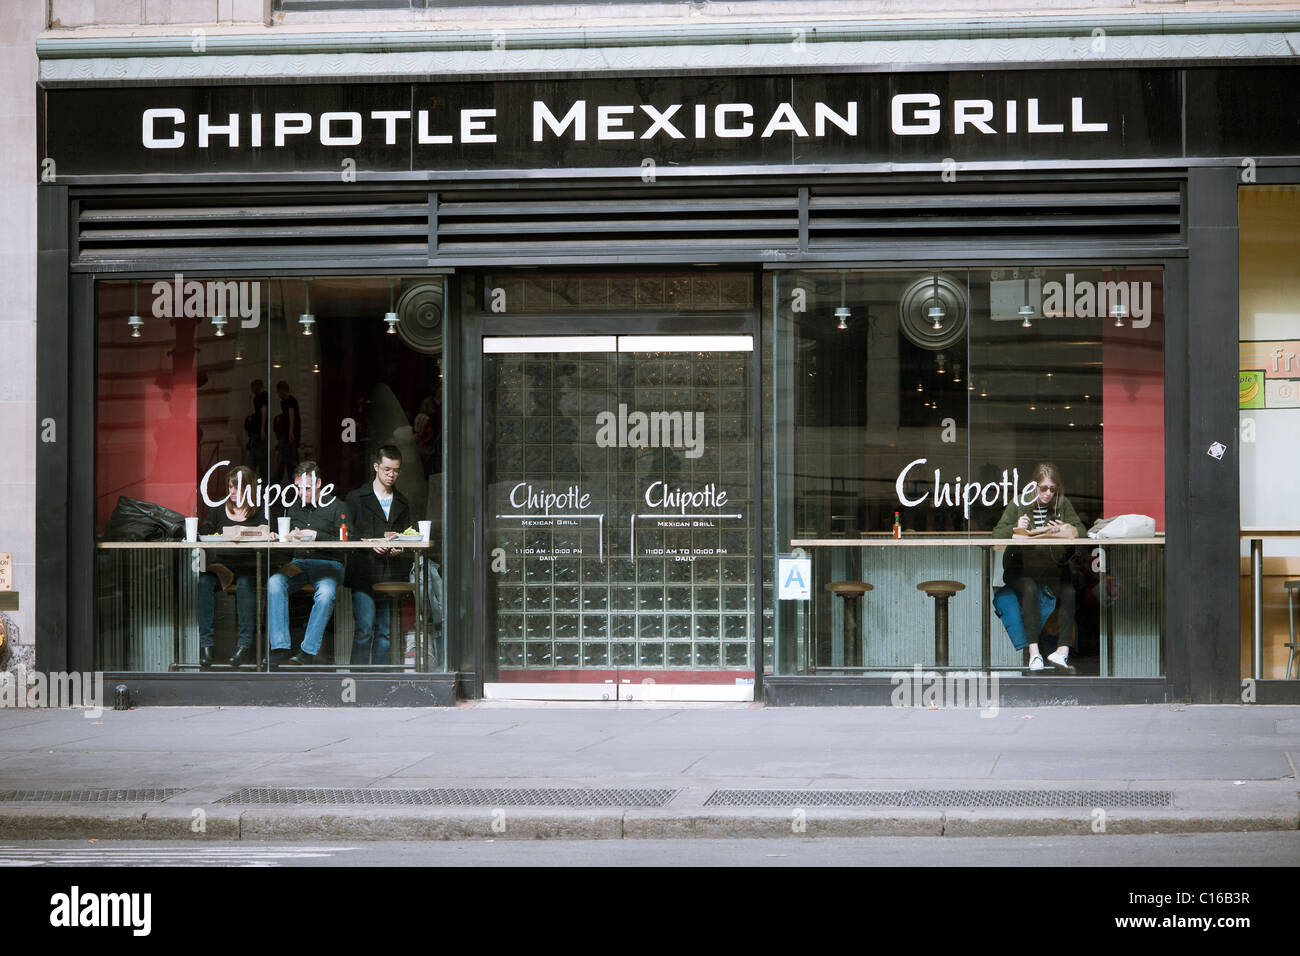 Chipotle Mexican Grill Stock Photos Chipotle Mexican Grill Stock